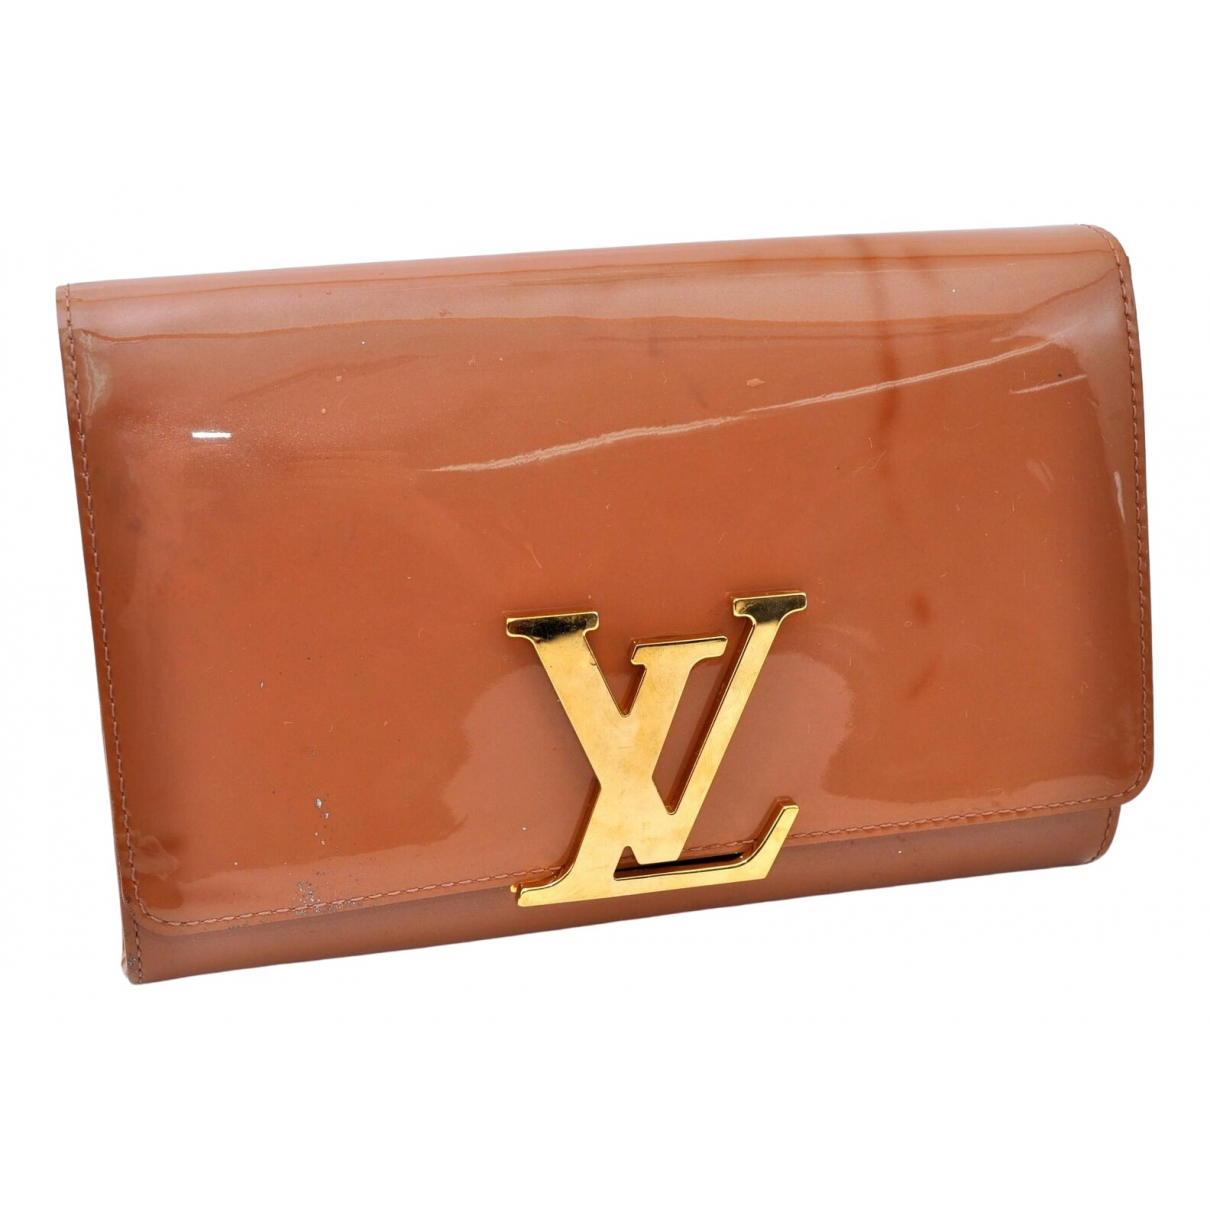 Louis Vuitton \N Beige Patent leather Clutch bag for Women \N